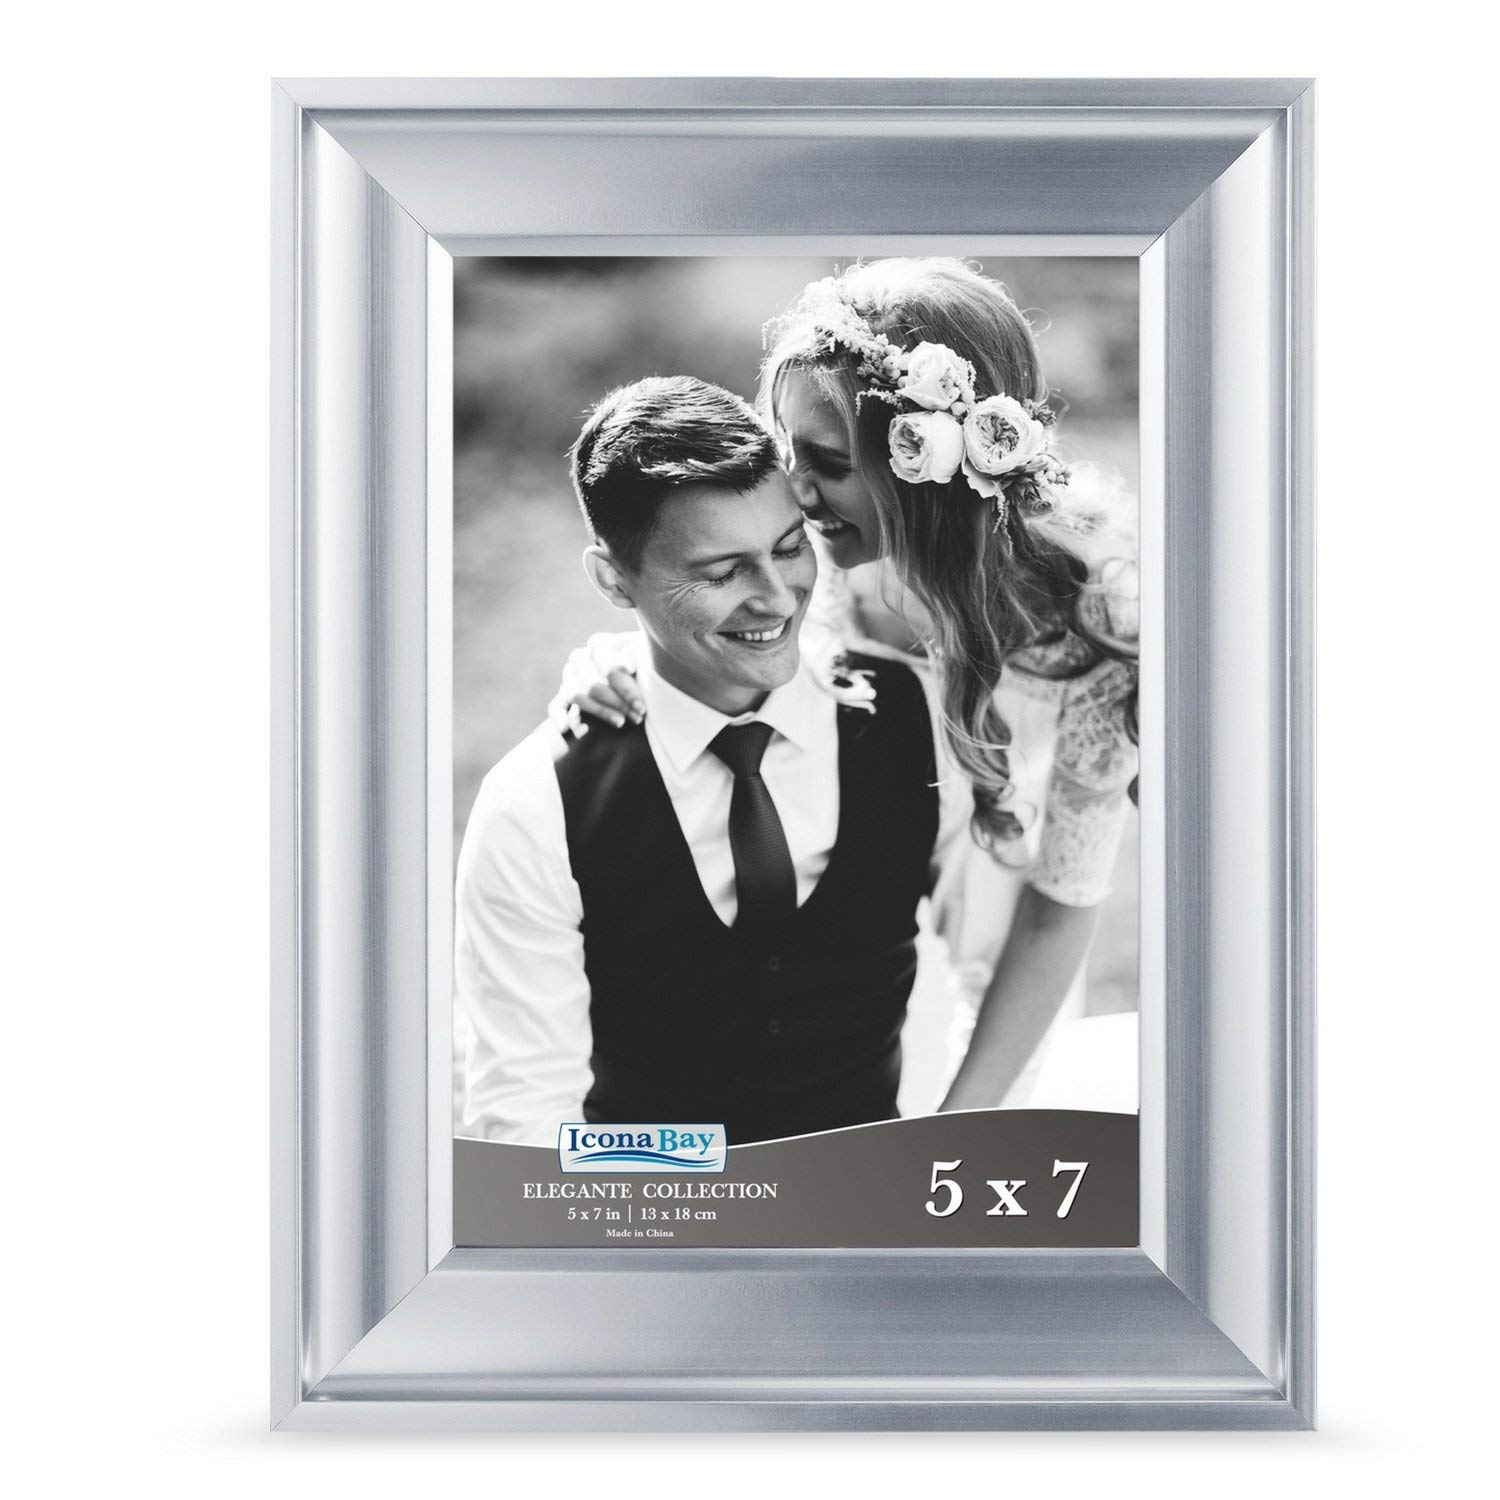 Icona Bay 5 by 7 Picture Frame (5x7, 1 Pack, Silver) Photo Frame, Wall Mount Hangers and Black Velvet Back, Table Top Easel, Landscape as 7x5 Picture Frame or Portrait as 5x7, Elegante Collection